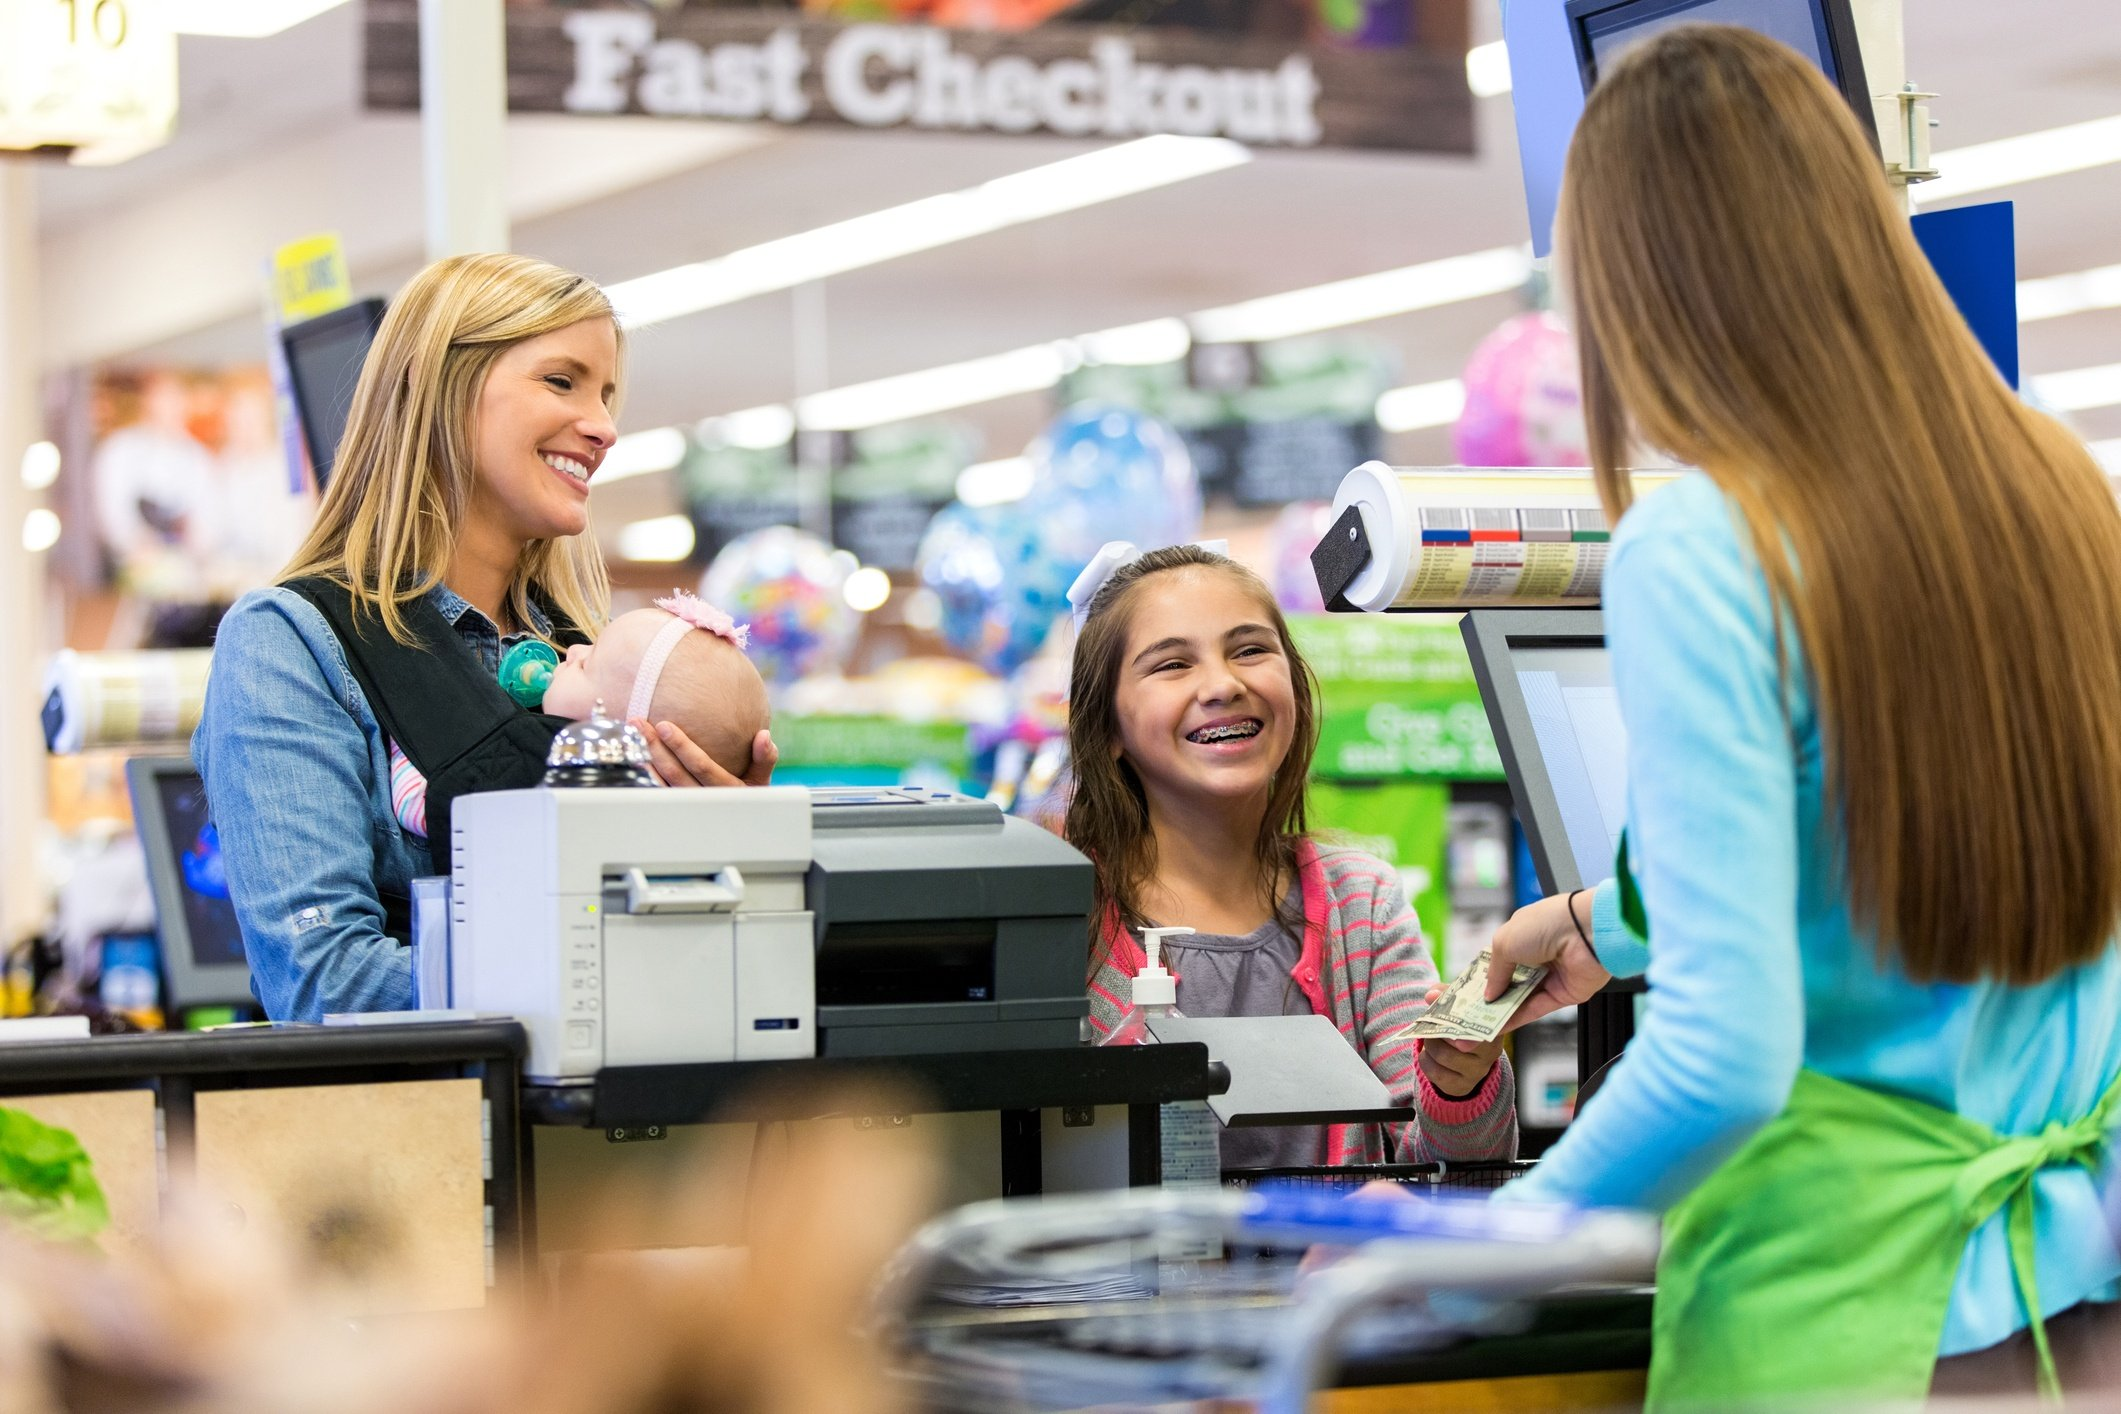 Cashier-giving-change-to-young-customer-in-grocery-store-501746150_2125x1416.jpeg